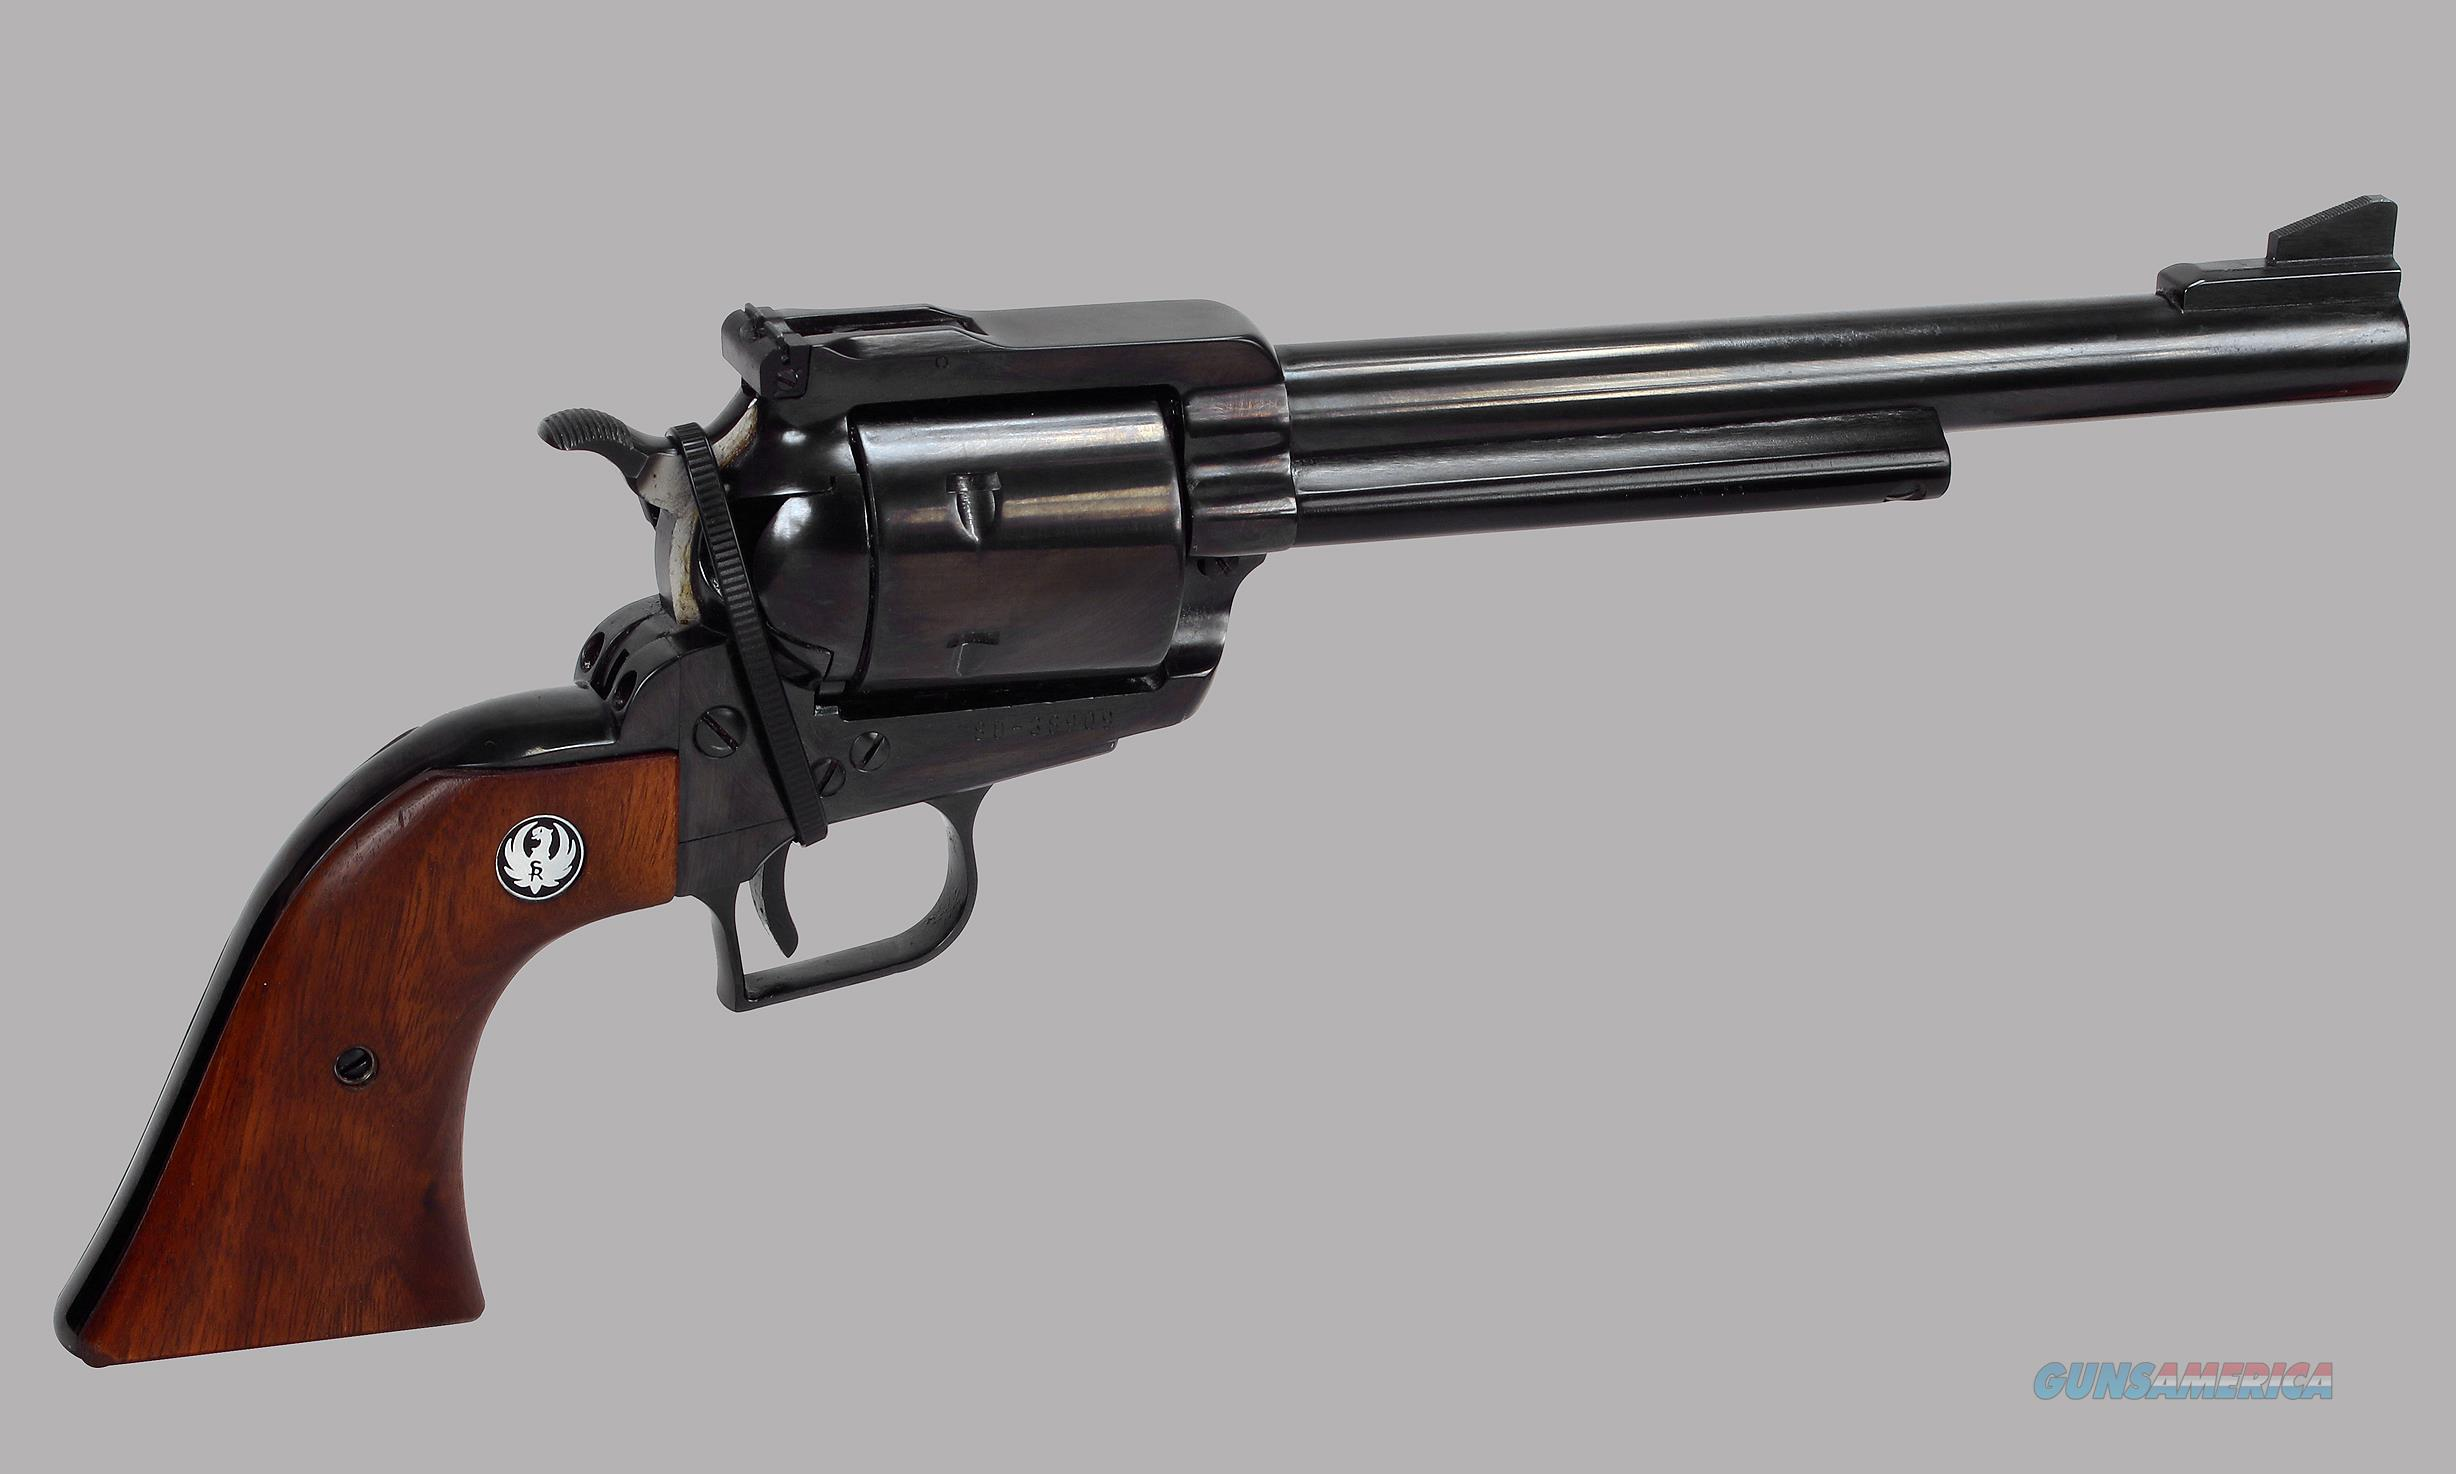 Ruger Super Blackhawk 44 Magnum Revolver  Guns > Pistols > Ruger Single Action Revolvers > Blackhawk Type